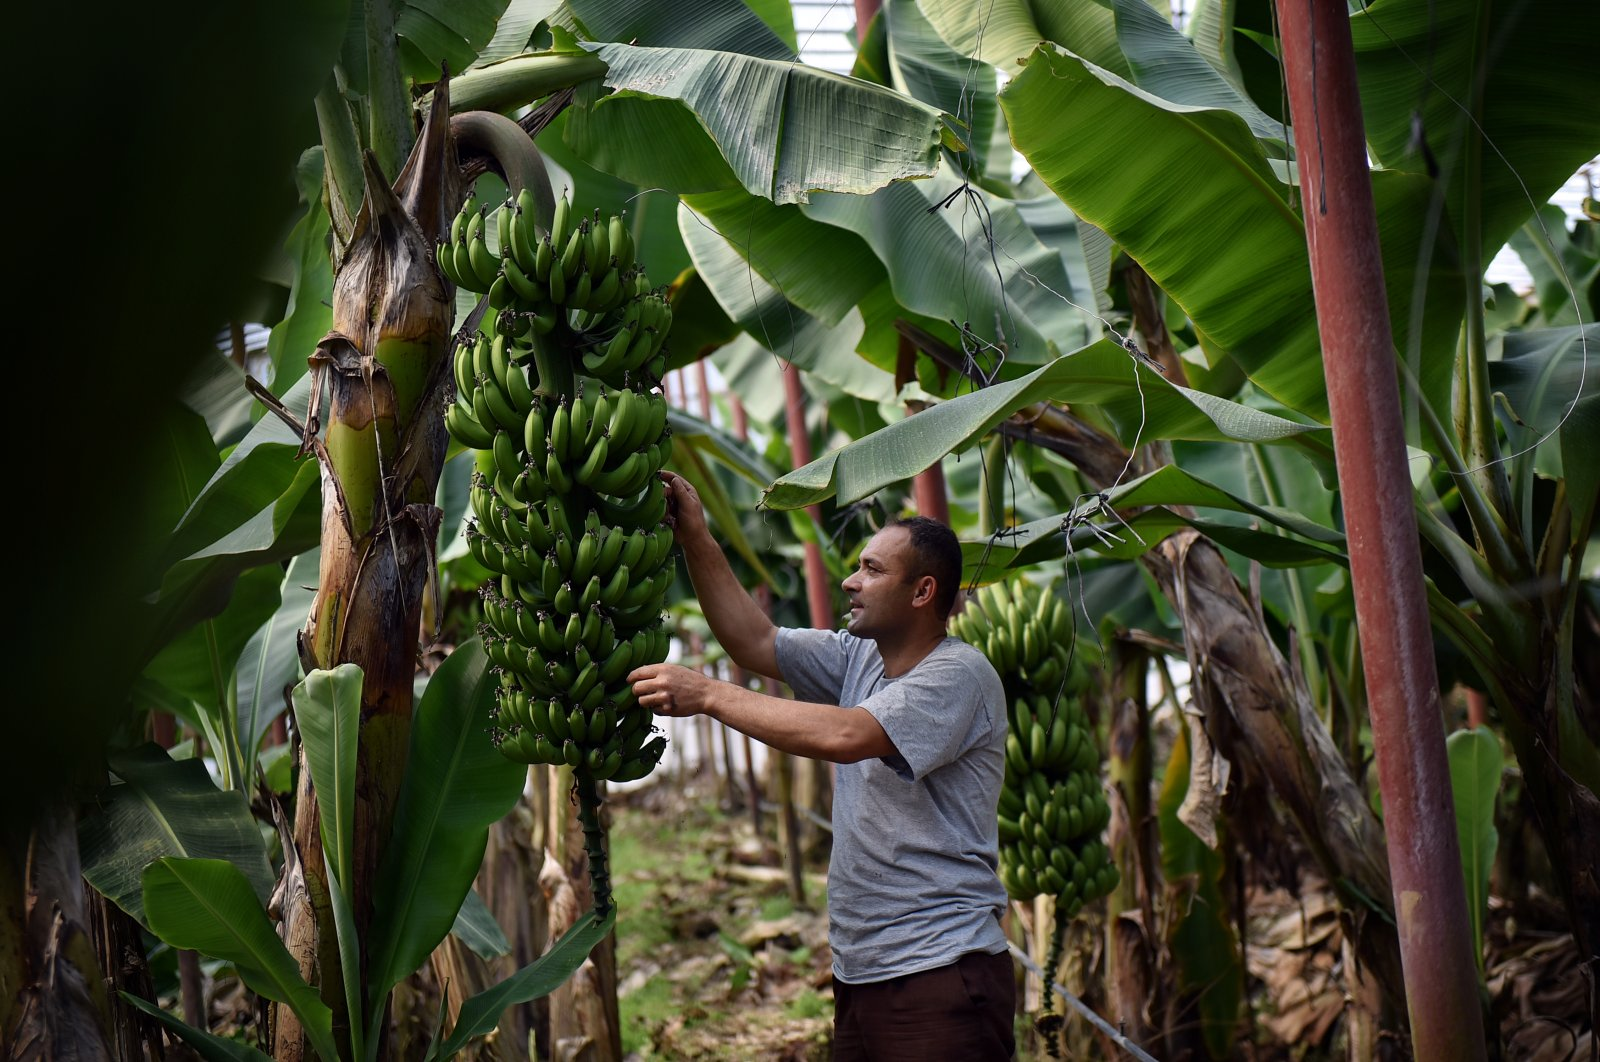 An agricultural worker checks a banana tree in a greenhouse in southern Mersin province's Anamur district, June 15, 2020. (AA Photo)